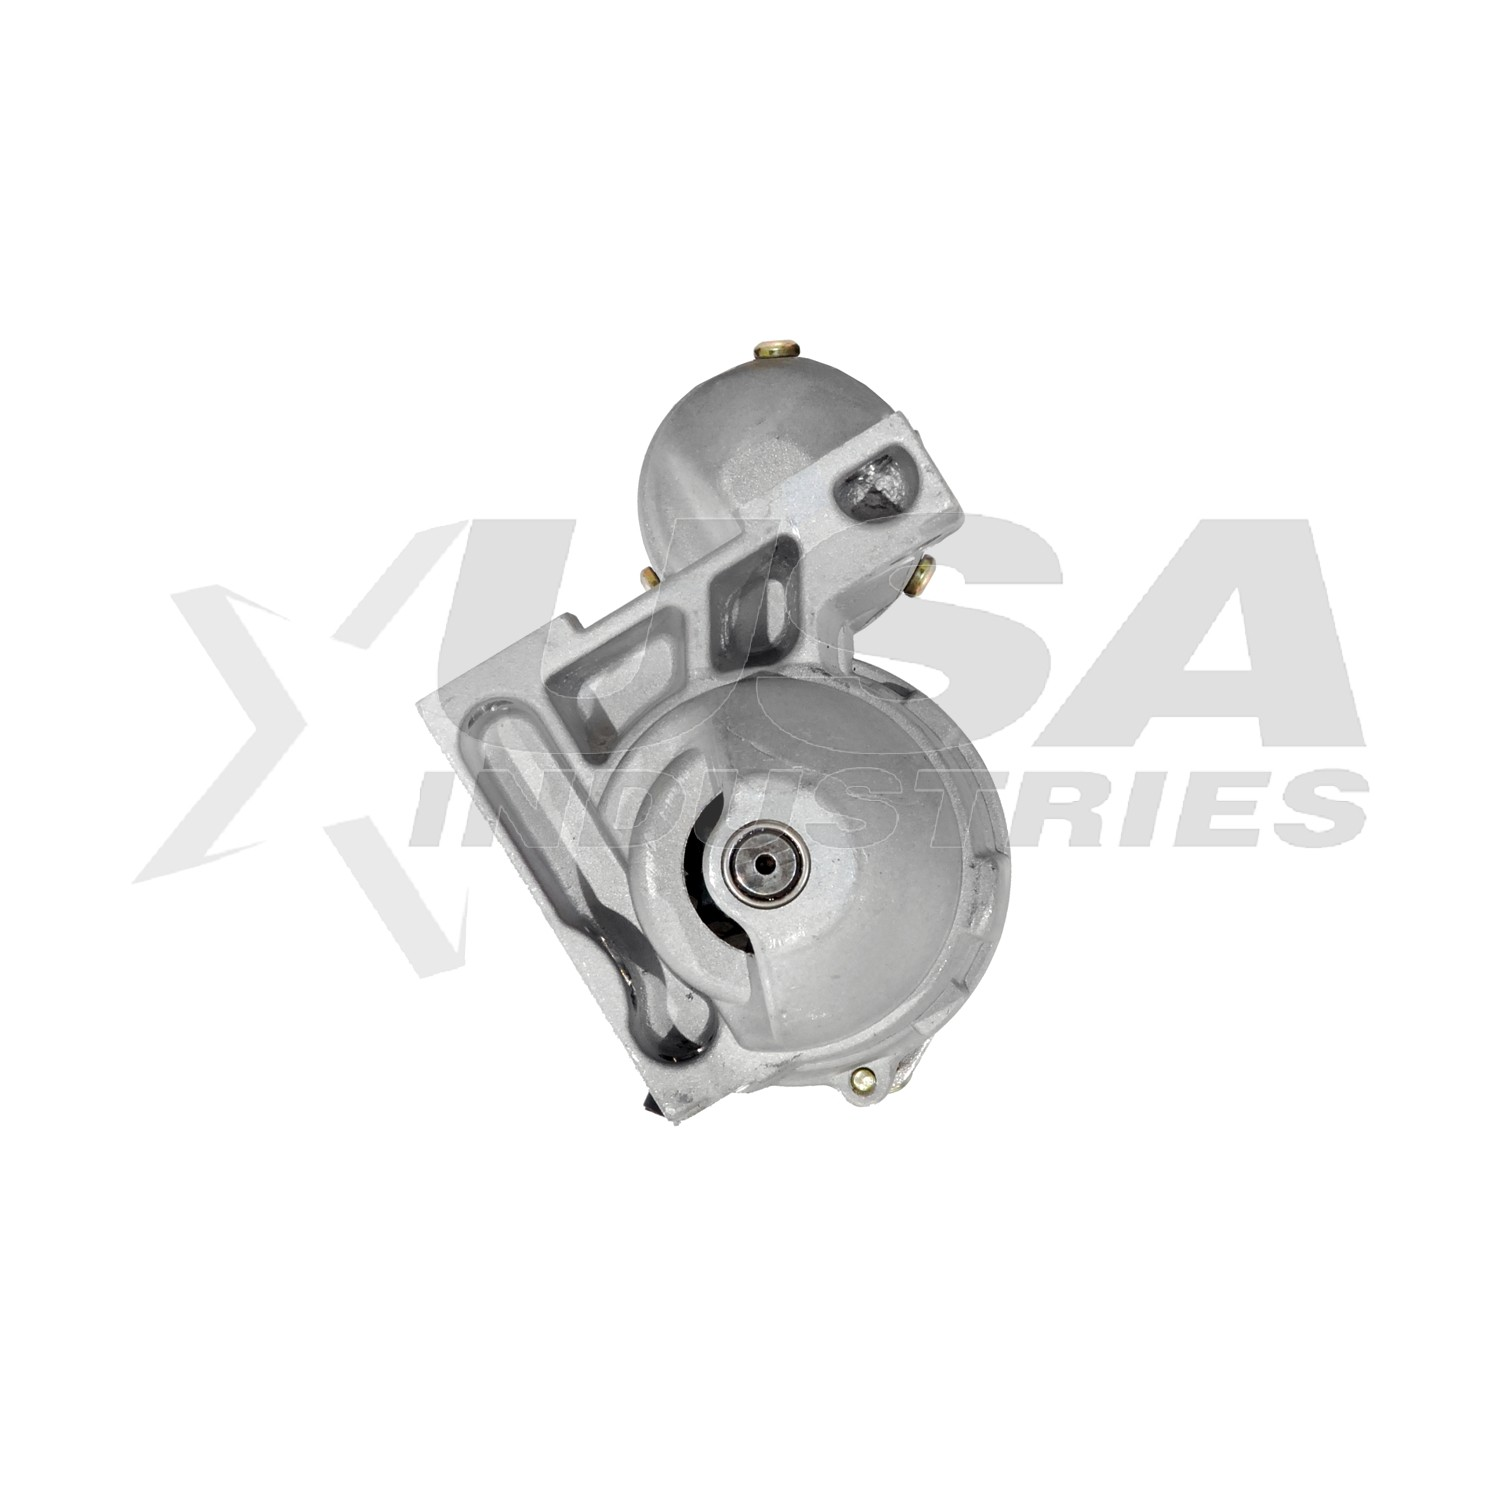 USA INDUSTRIES INC. - Reman Starter Motor - UIE 6442